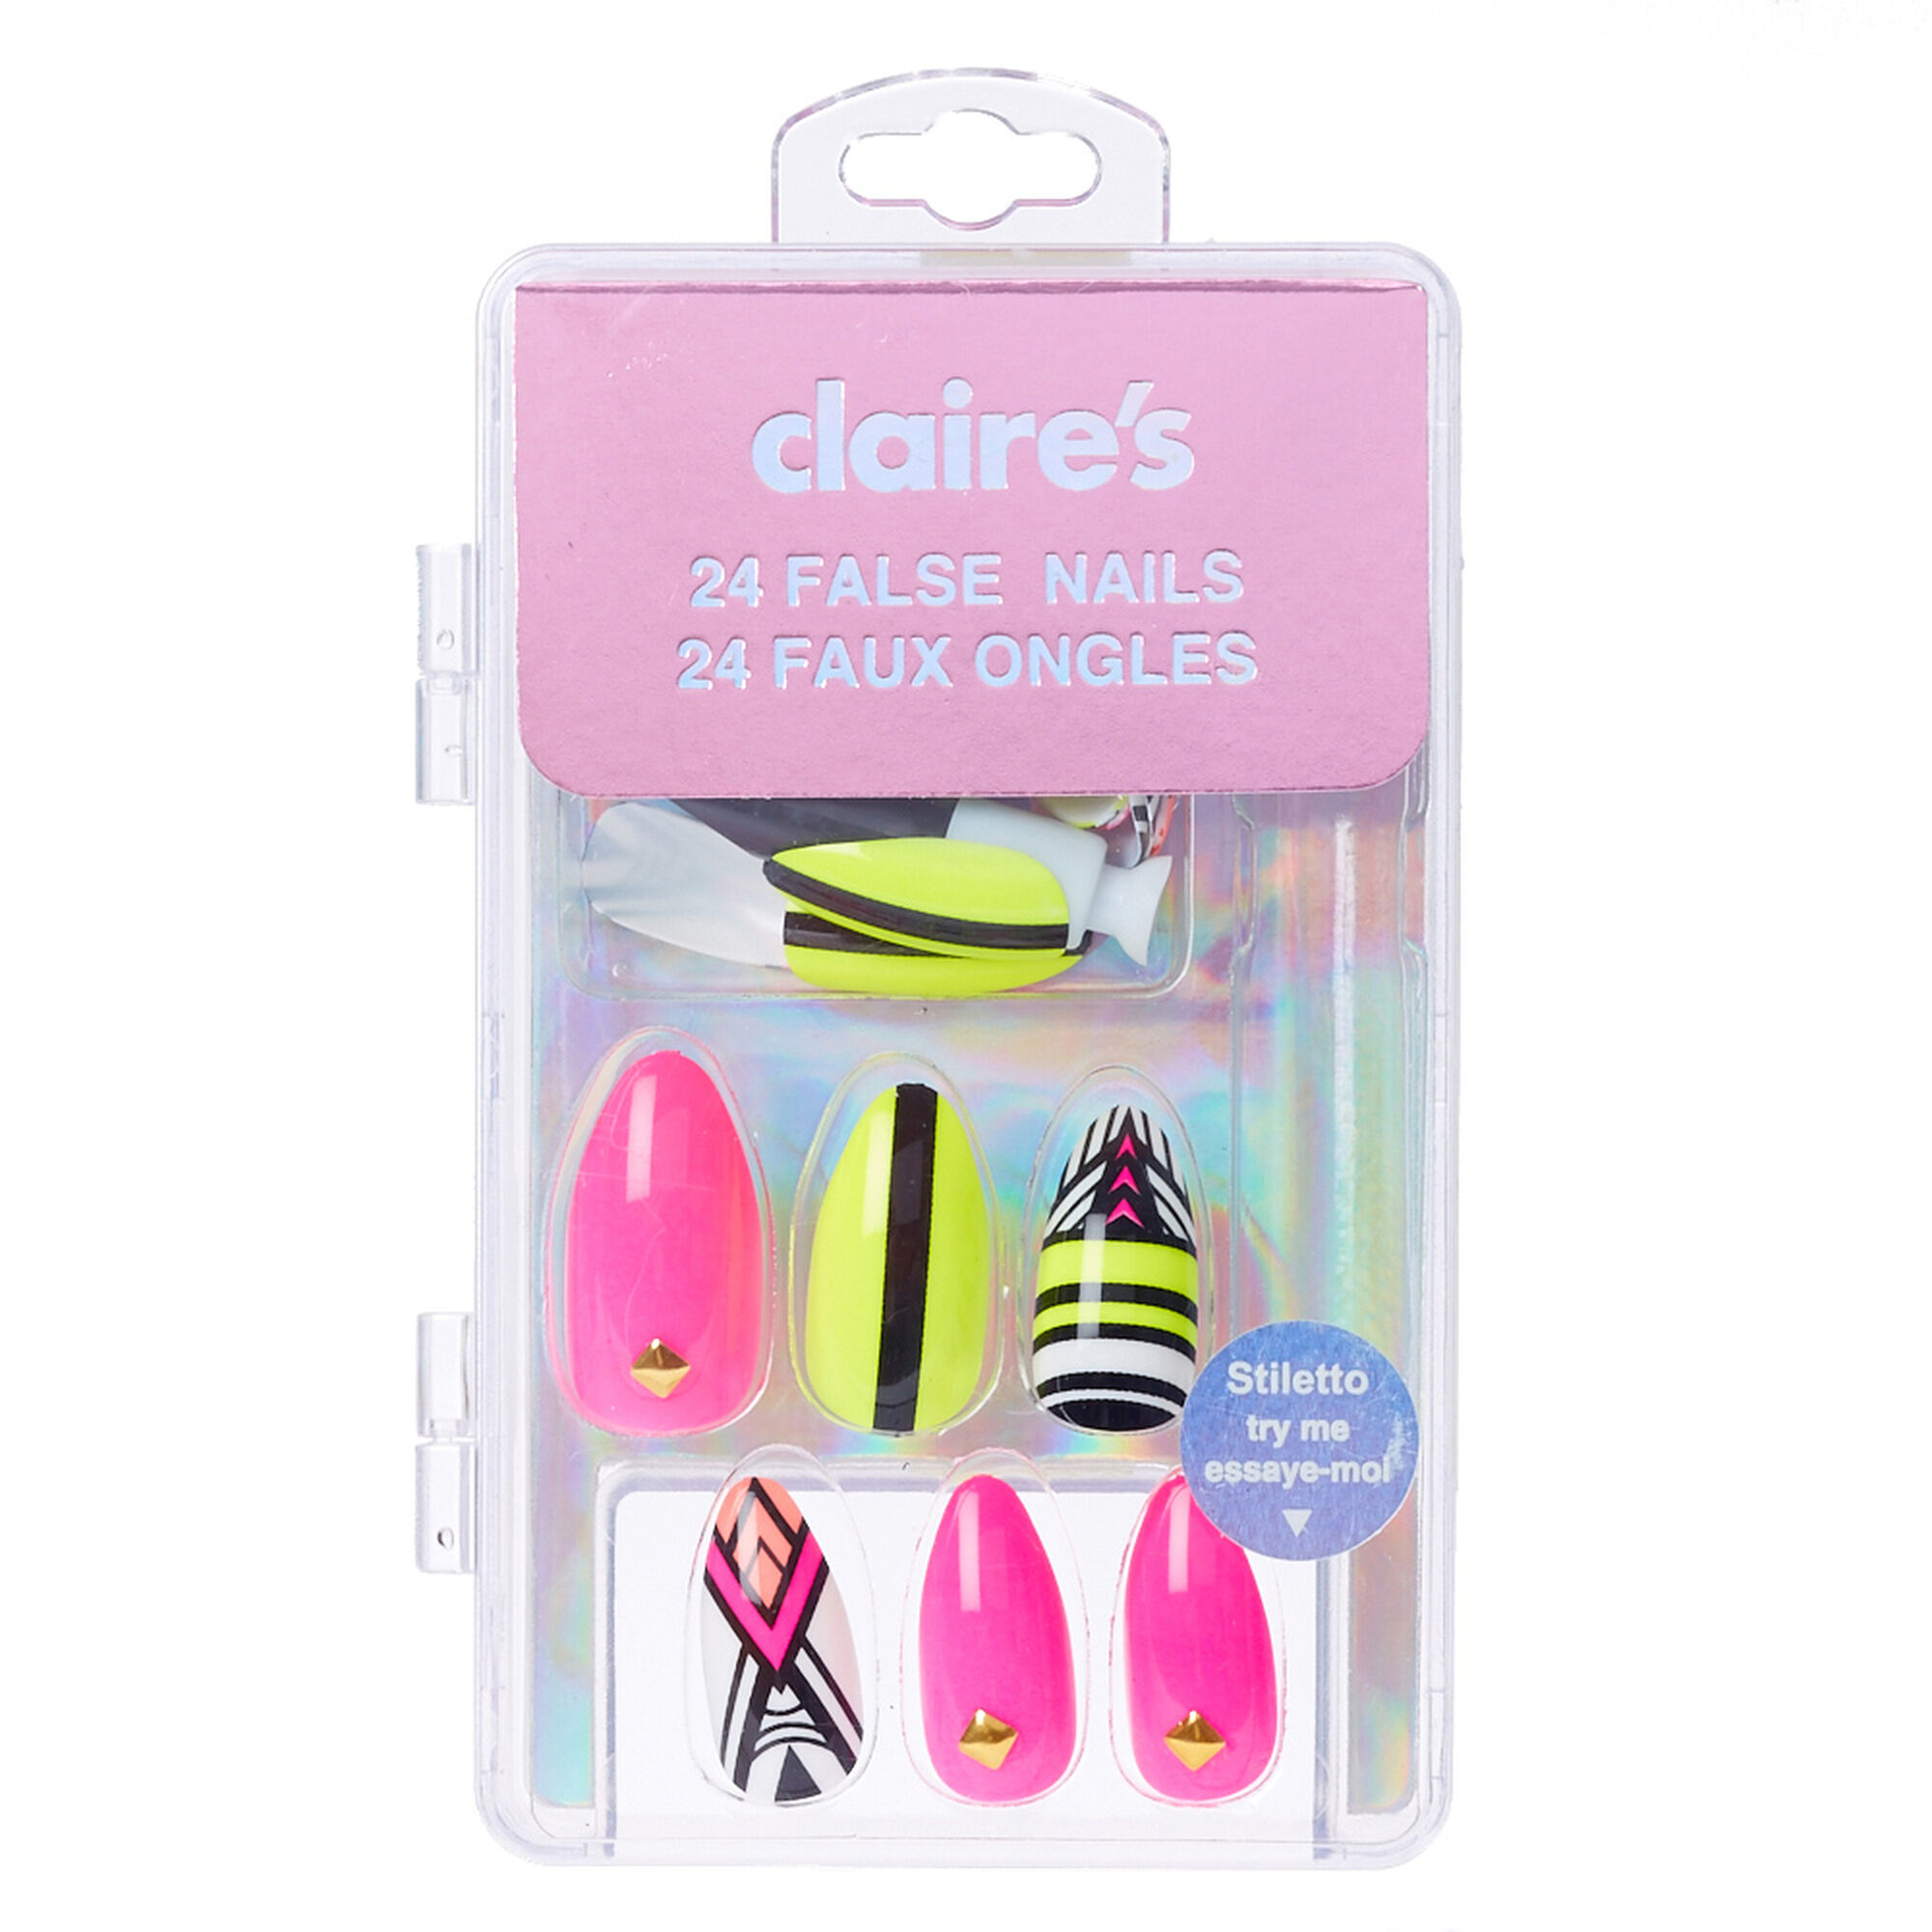 faux ongles cora